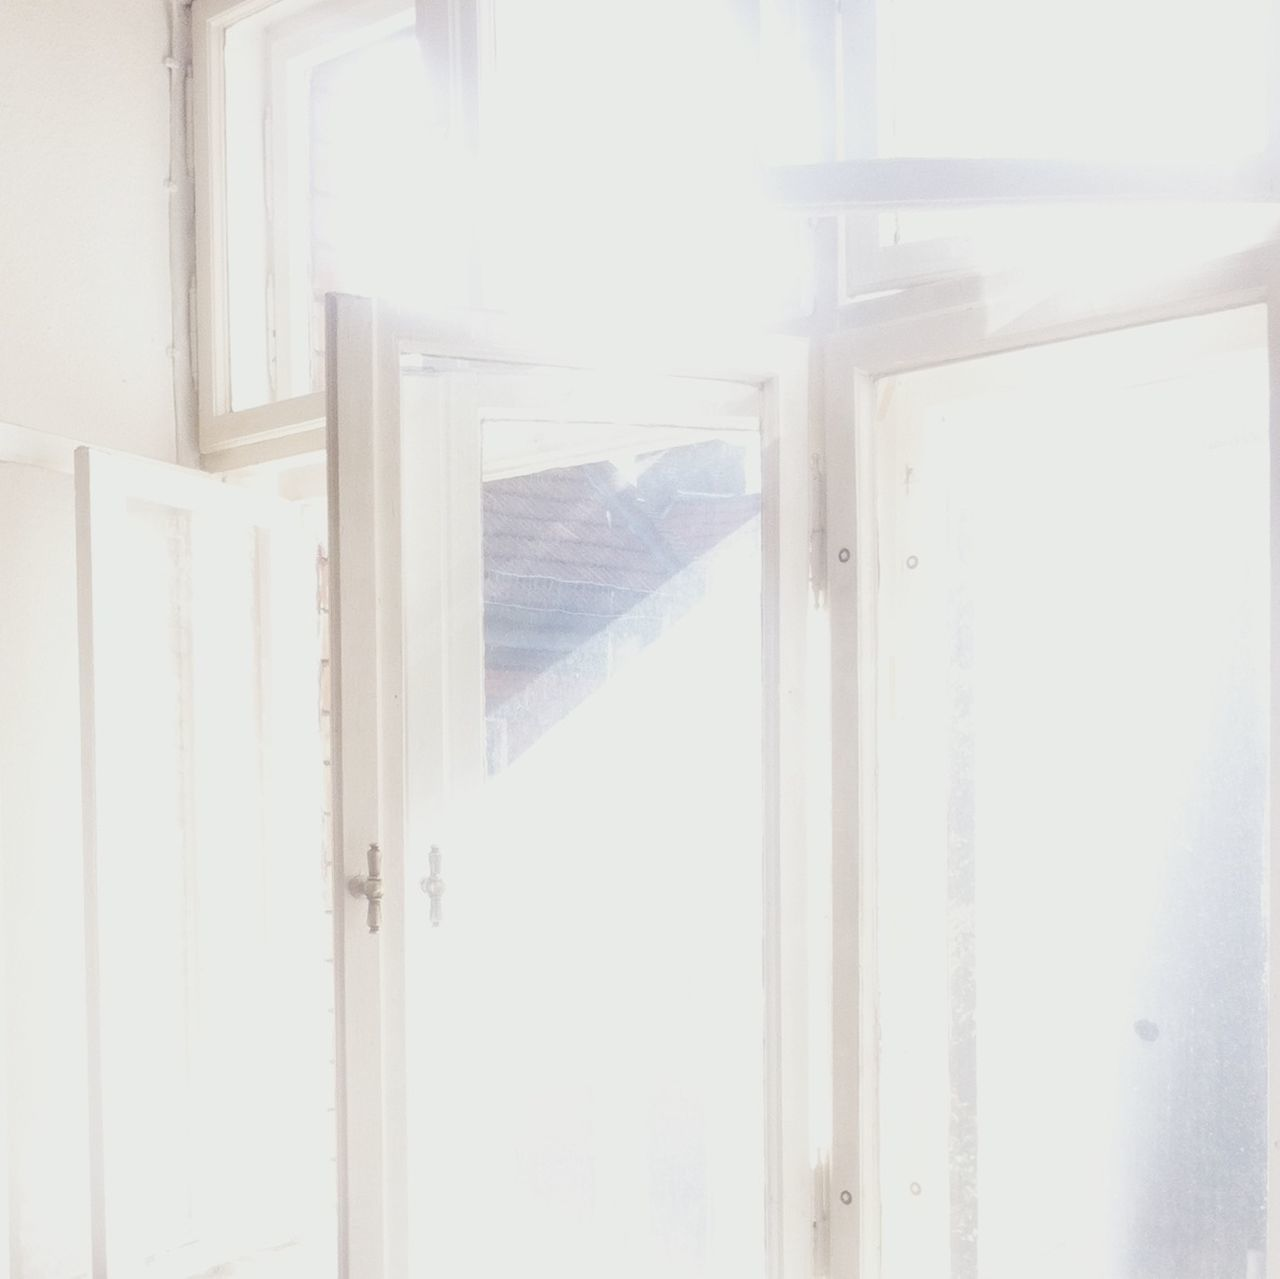 Sunlight Falling Through Window In House